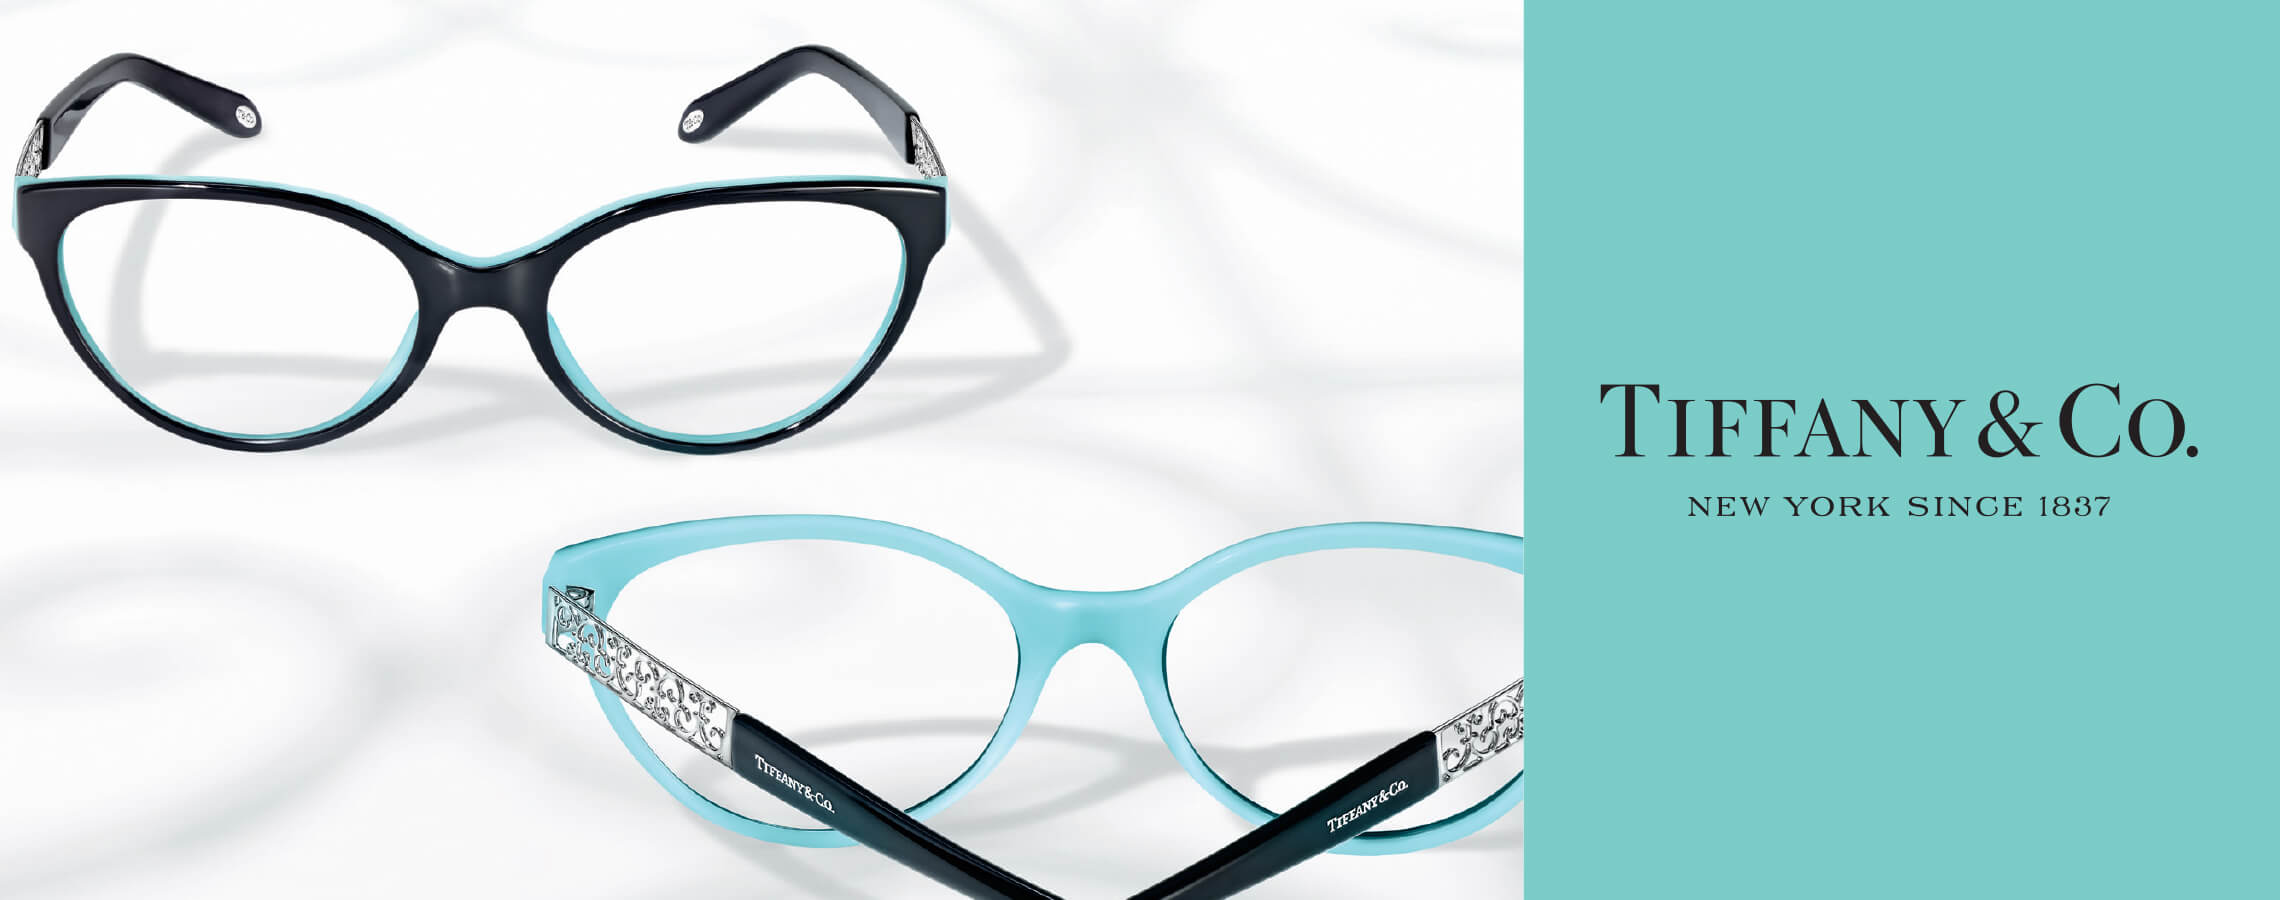 Tiffany & Co. Eyewear | James Read Opticians